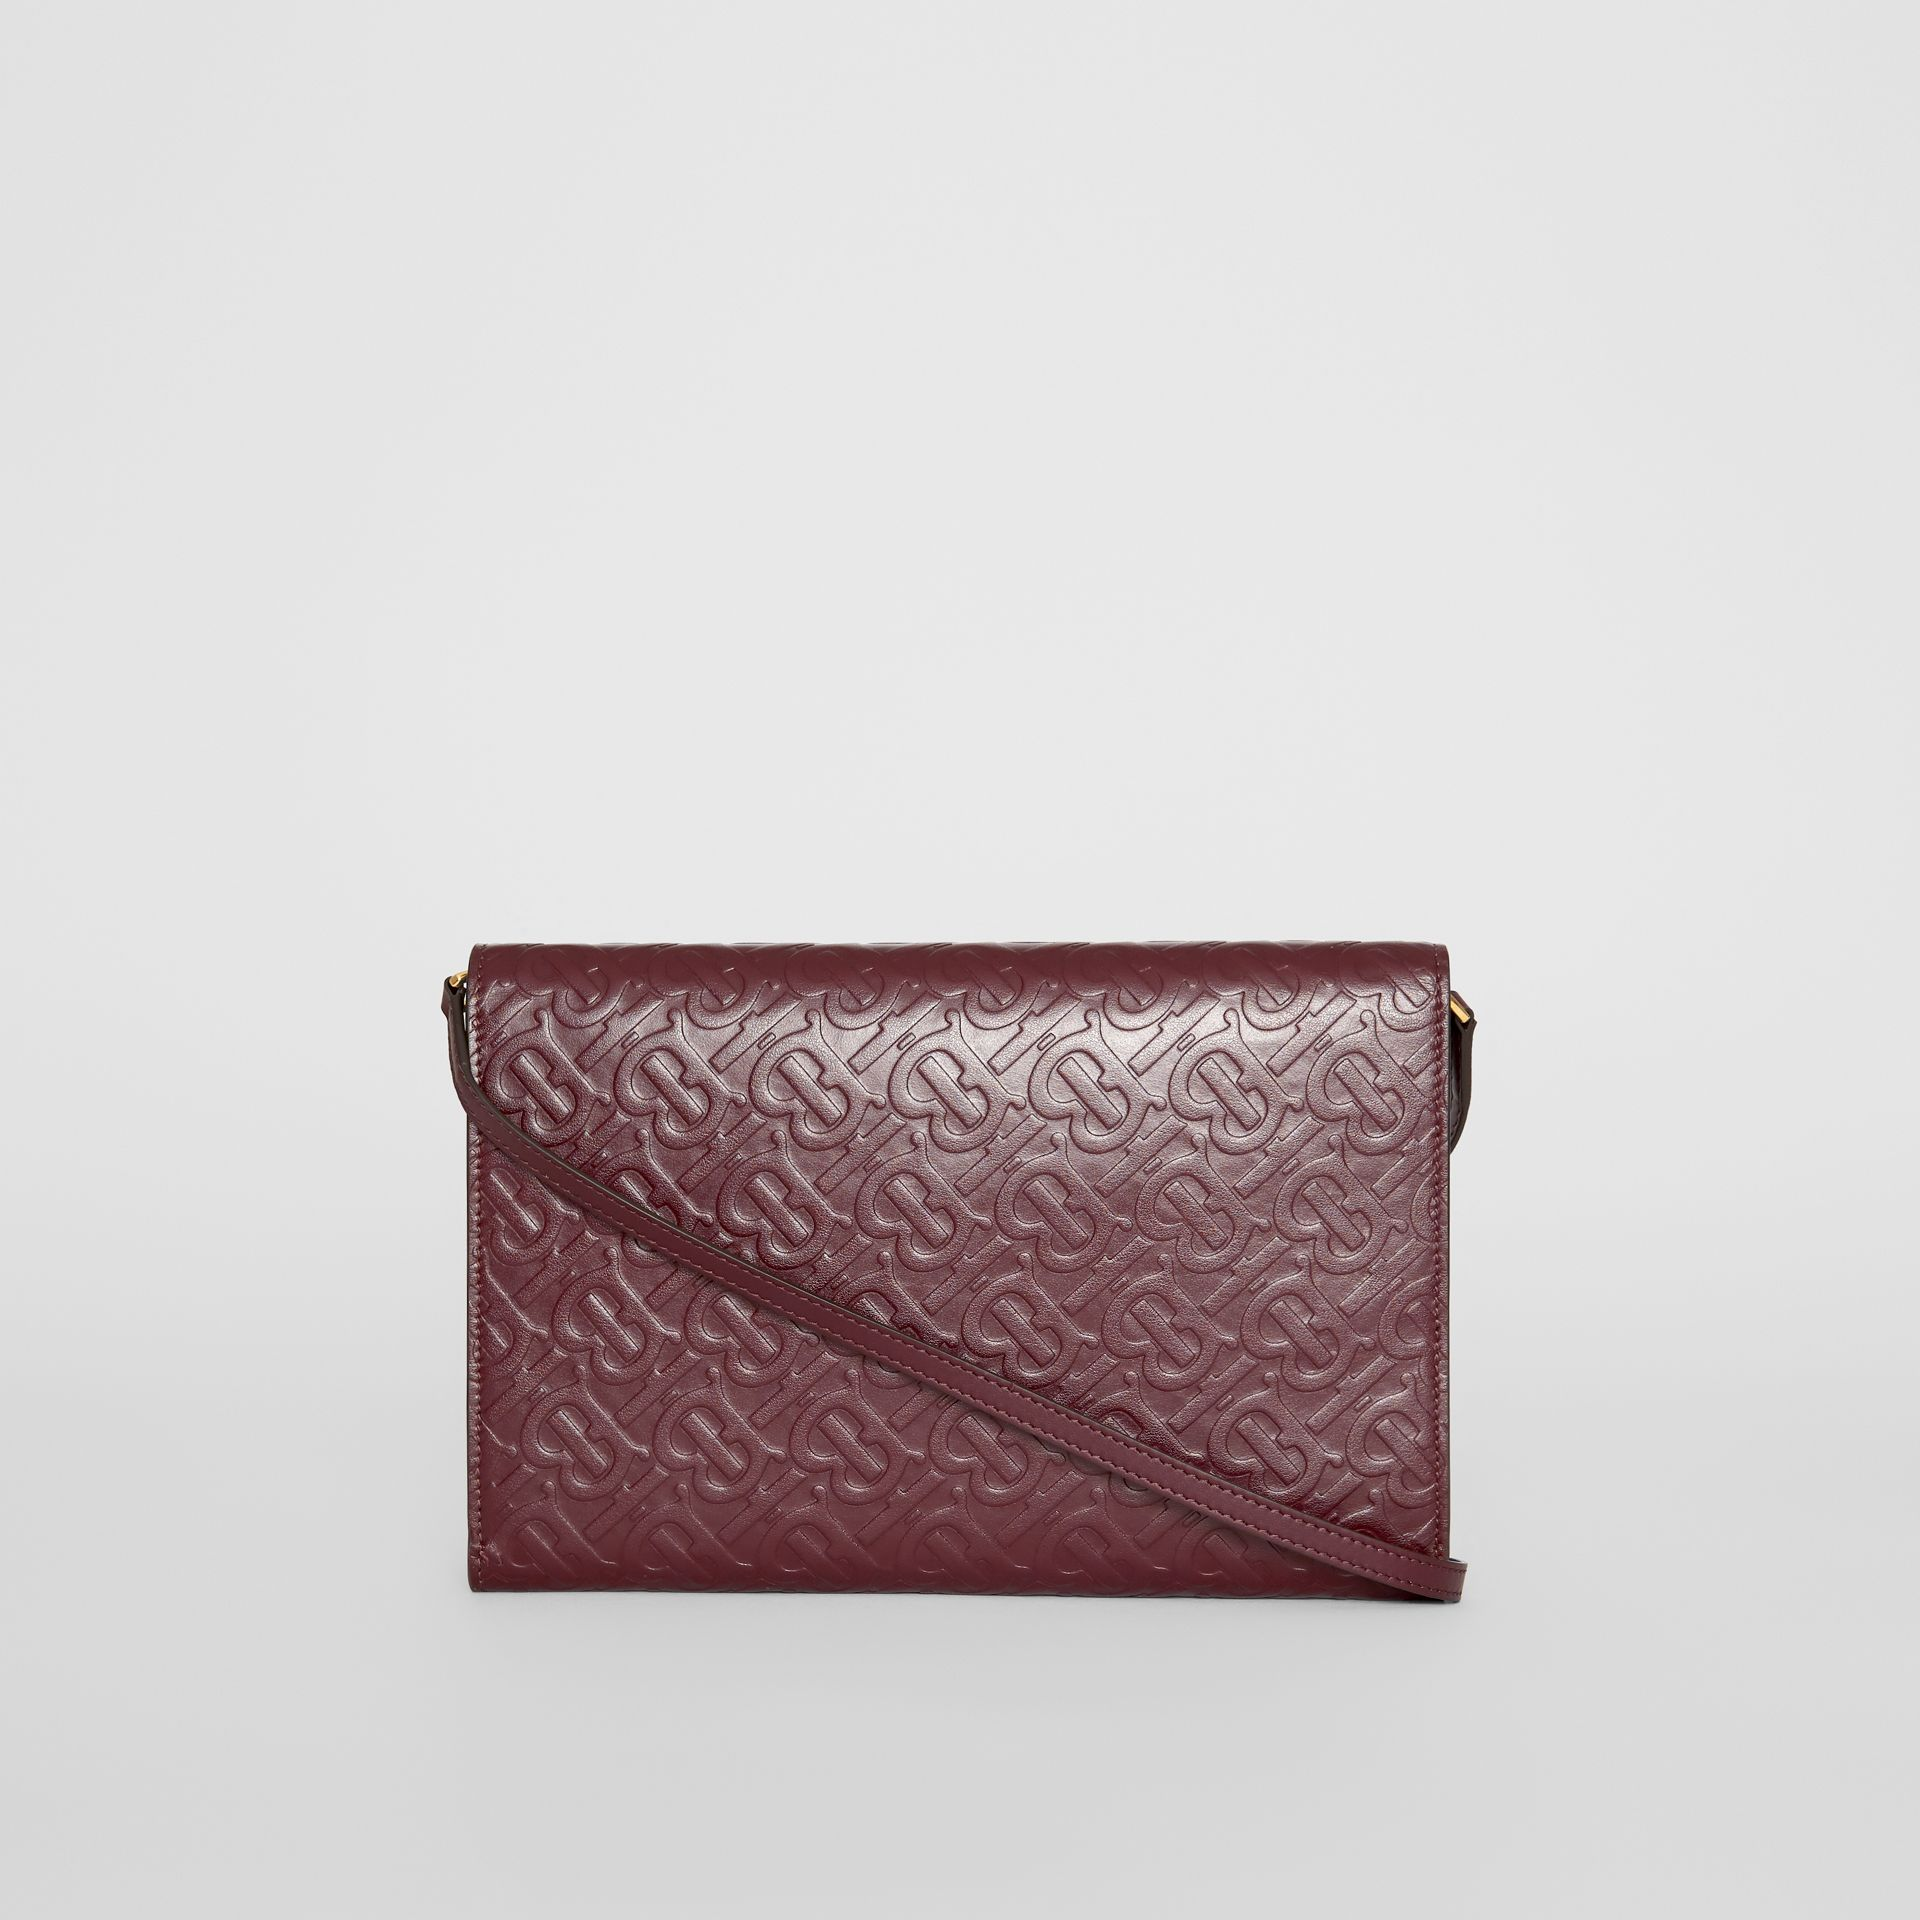 Monogram Leather Bag with Detachable Strap in Oxblood - Women | Burberry - gallery image 5